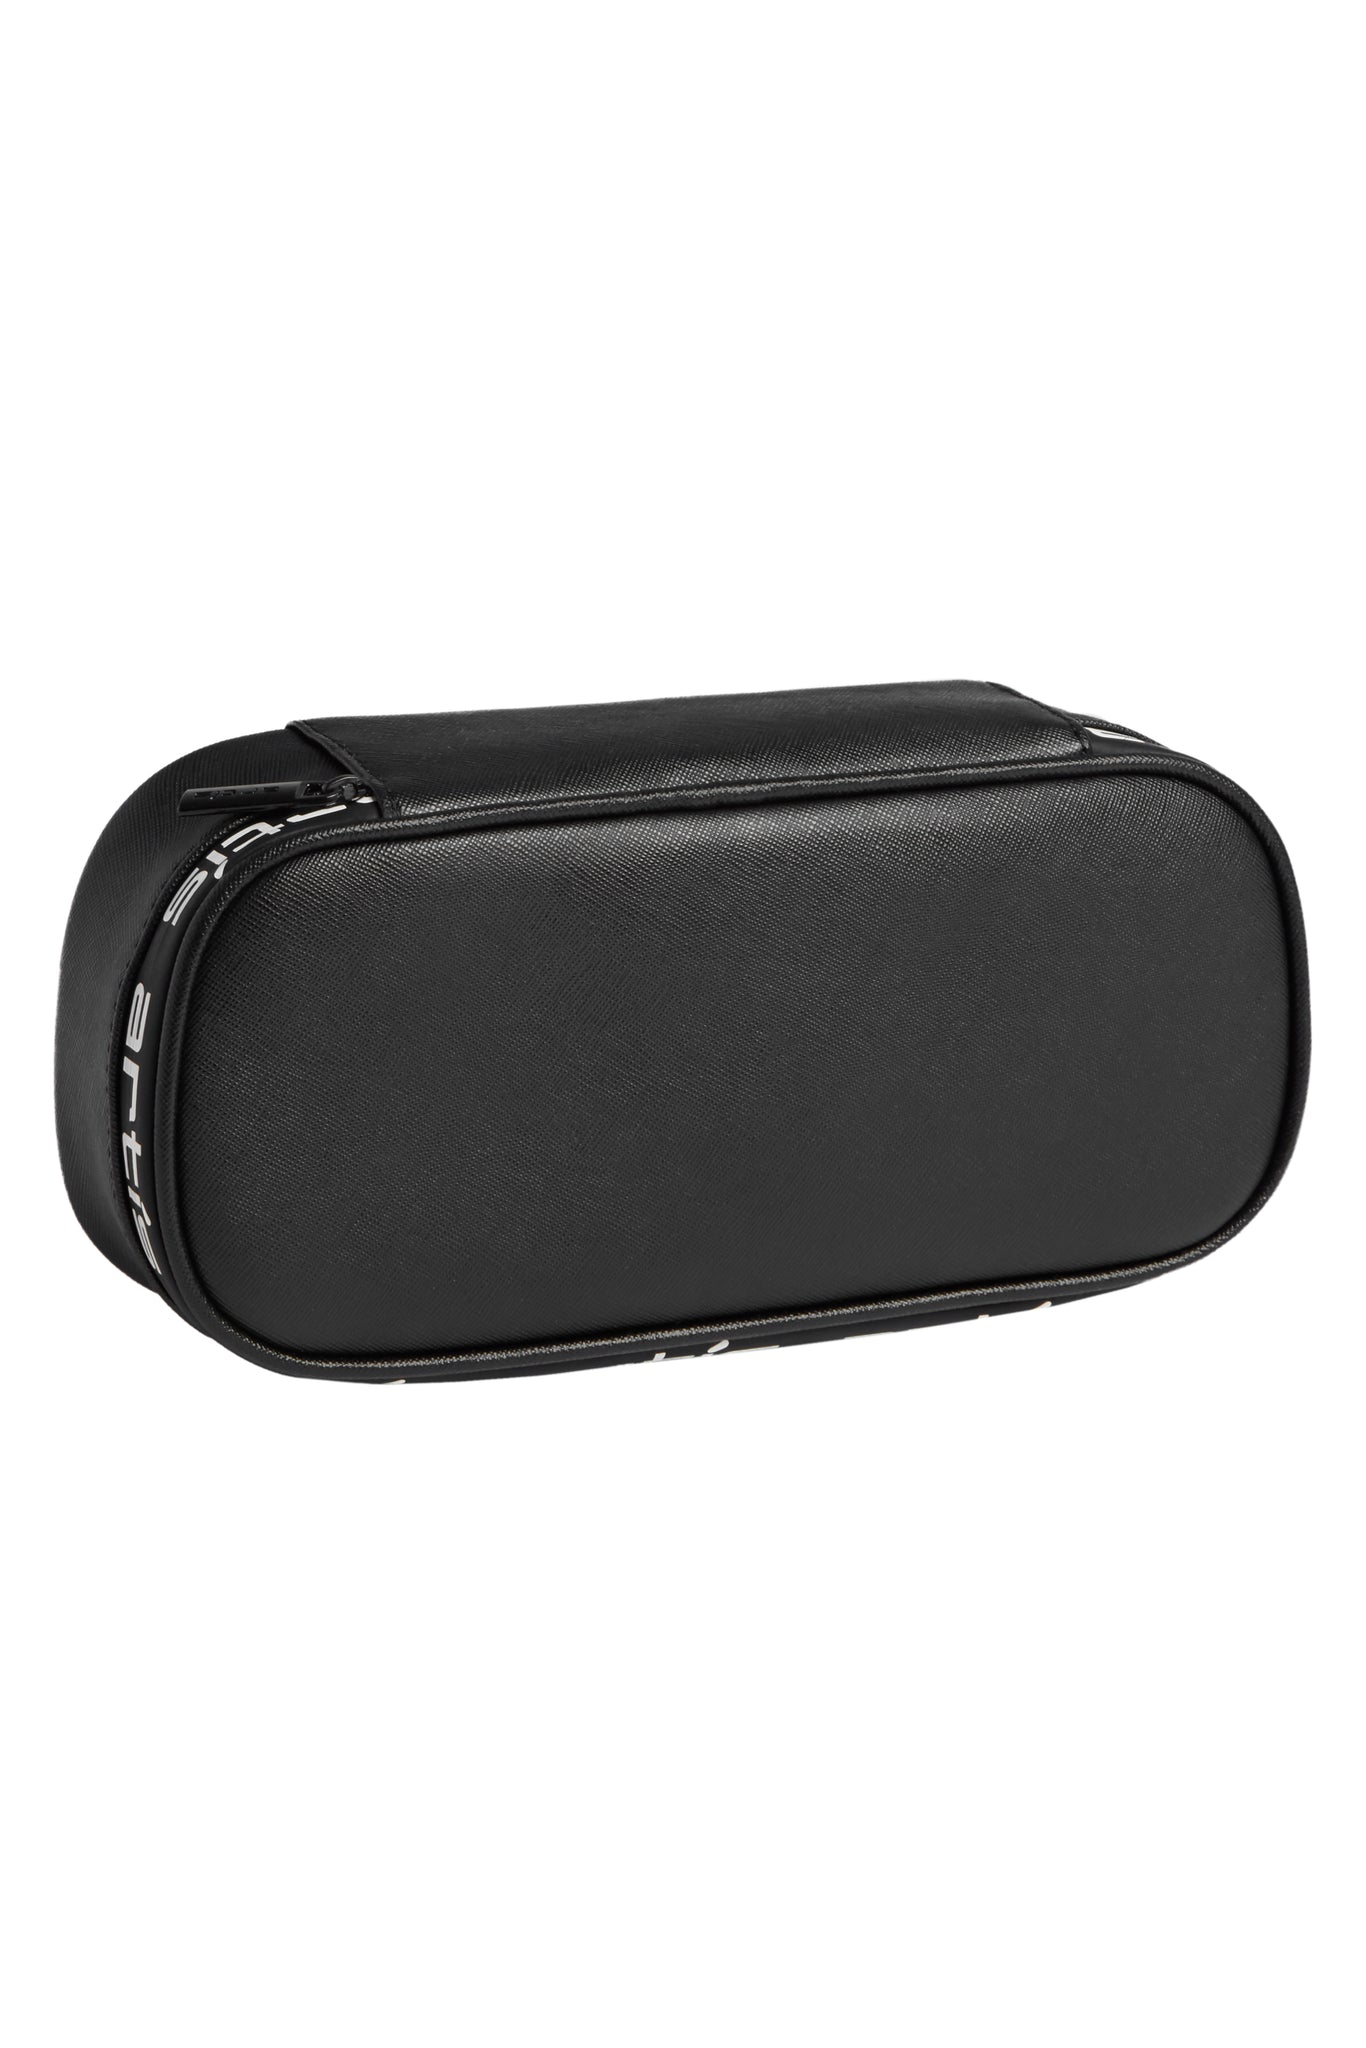 Runaround Travel Case, Small